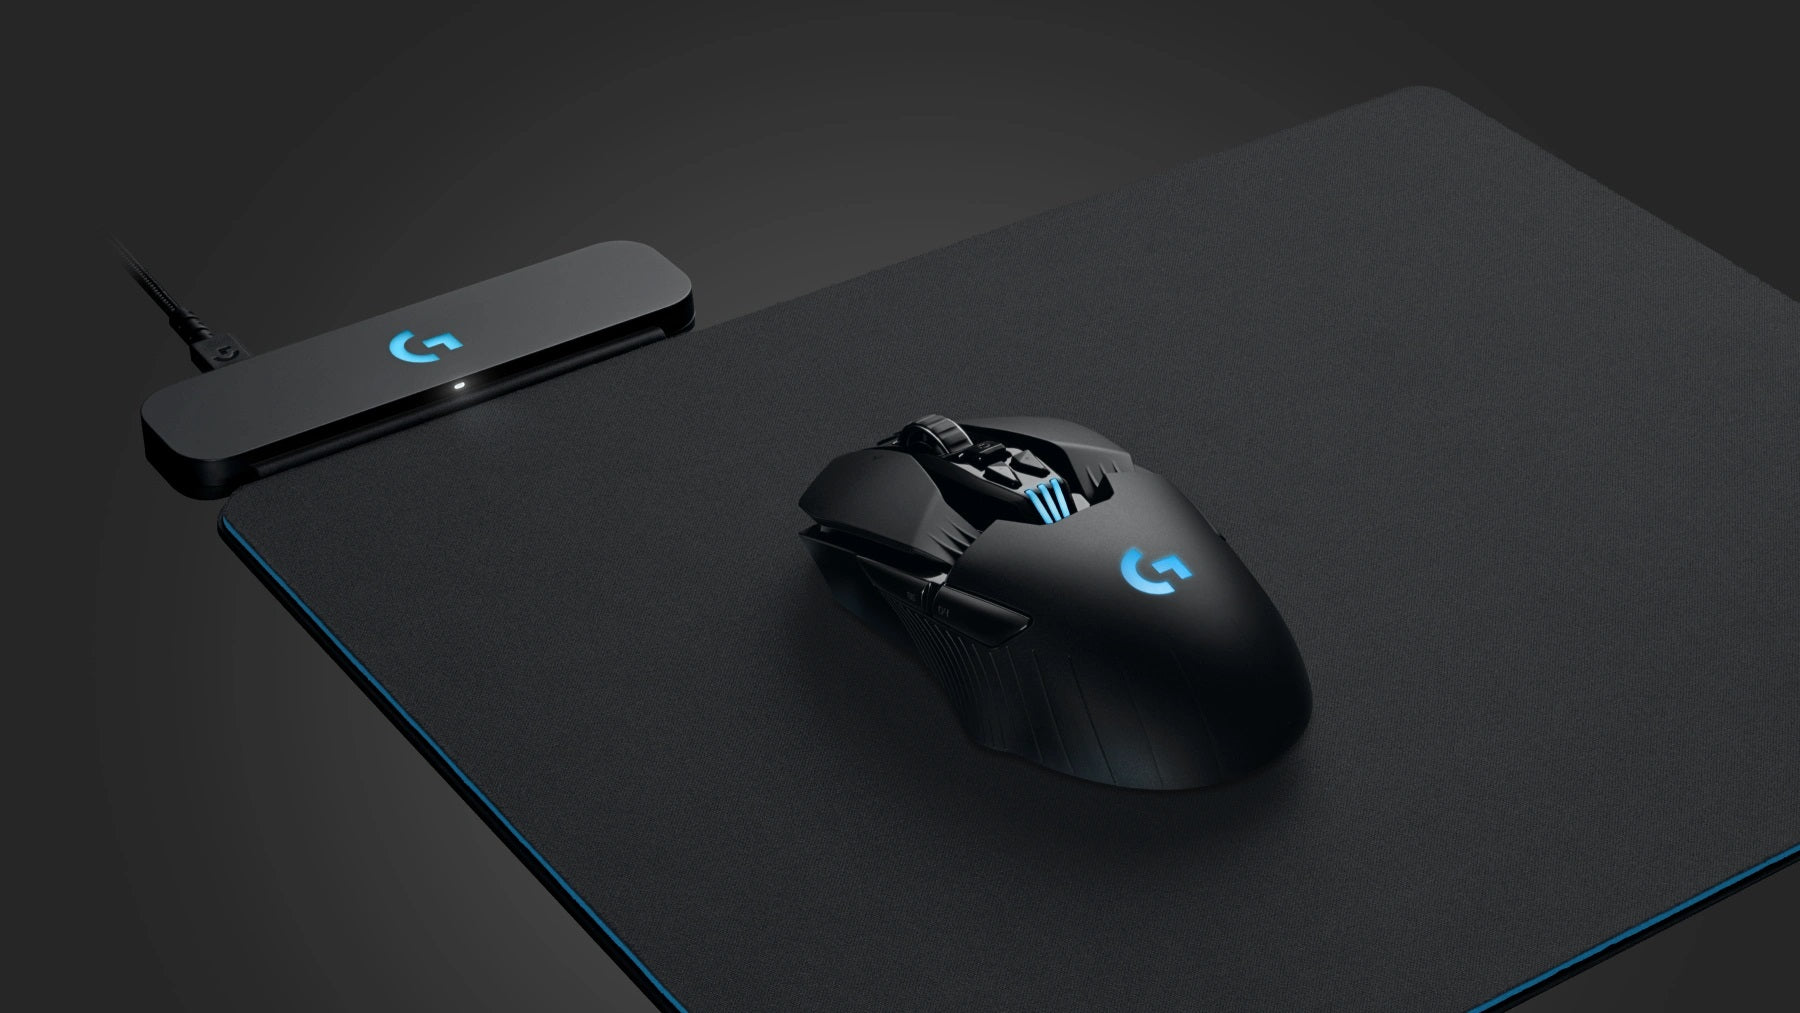 LIGHTSPEED™ WIRELESS TECHNOLOGY - Logitech G invented LIGHTSPEED wireless technology to deliver the ultimate in high-performance wireless gaming.